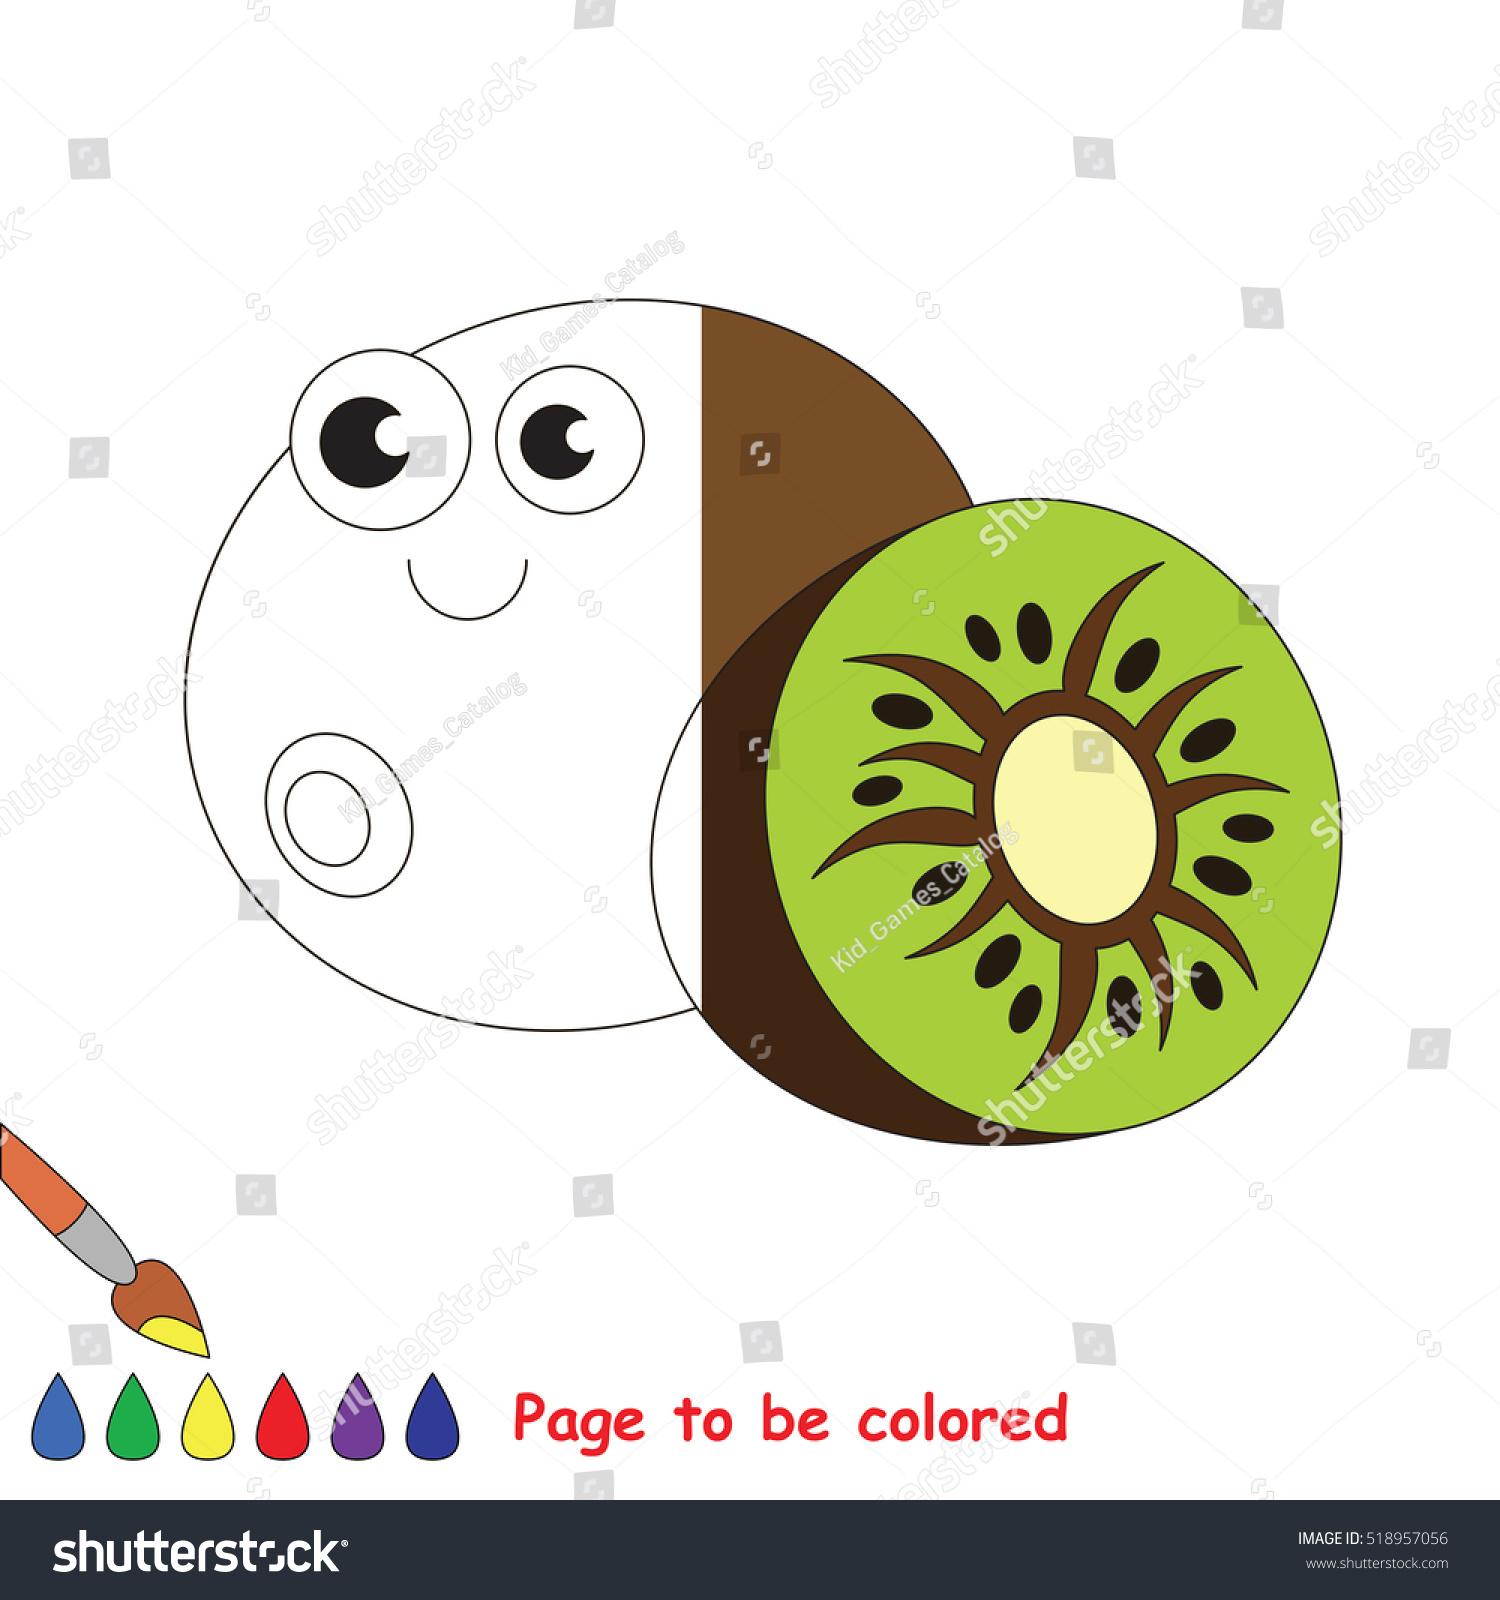 Kiwi Be Colored Coloring Book Educate Stock Photo (Photo, Vector ...